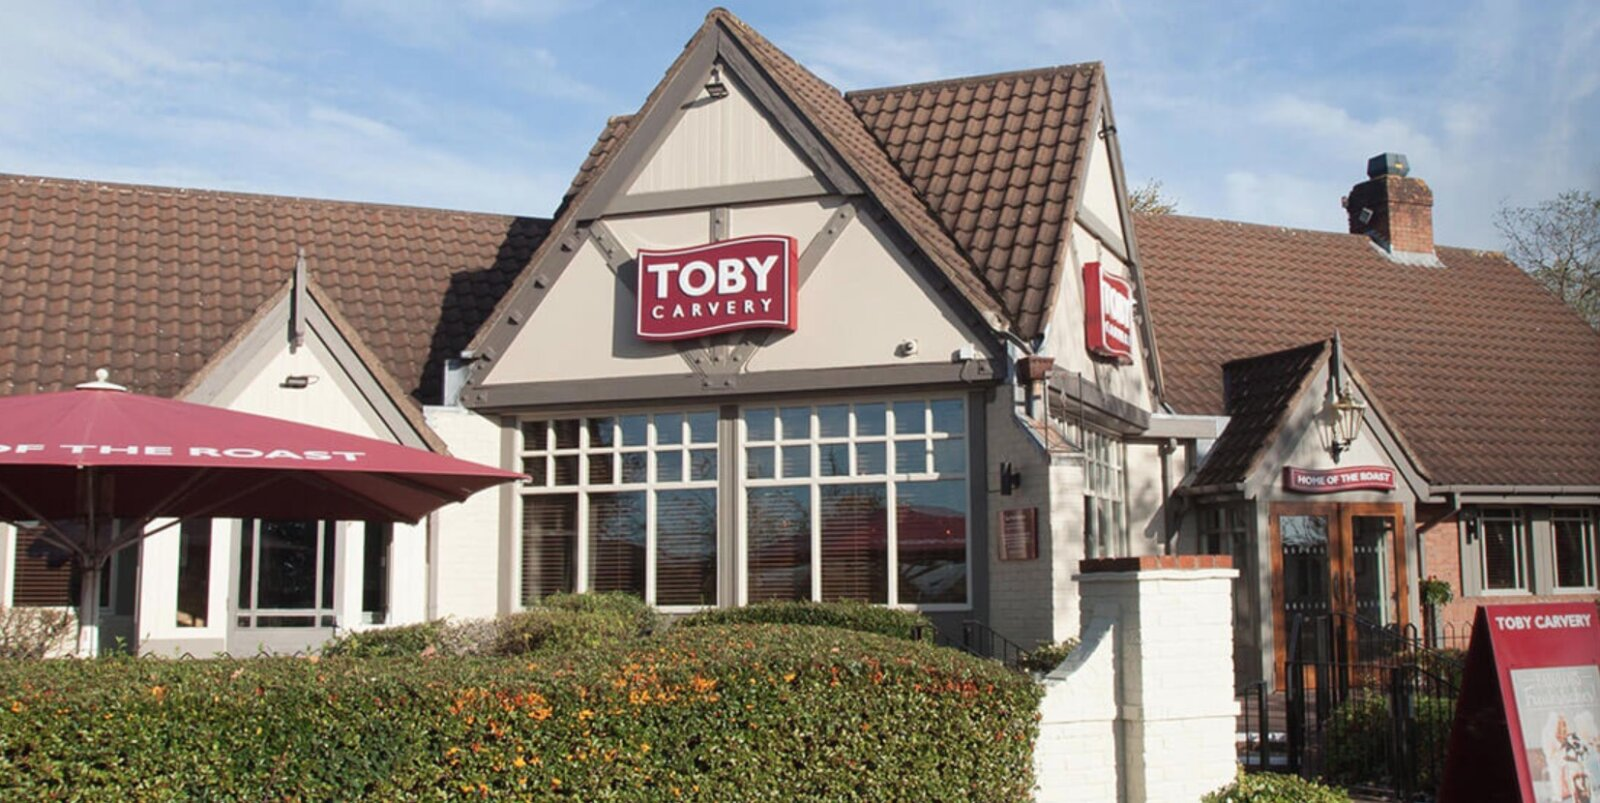 You won't be able to serve yourself a roast at Toby Carvery once it reopens this week, The Manc